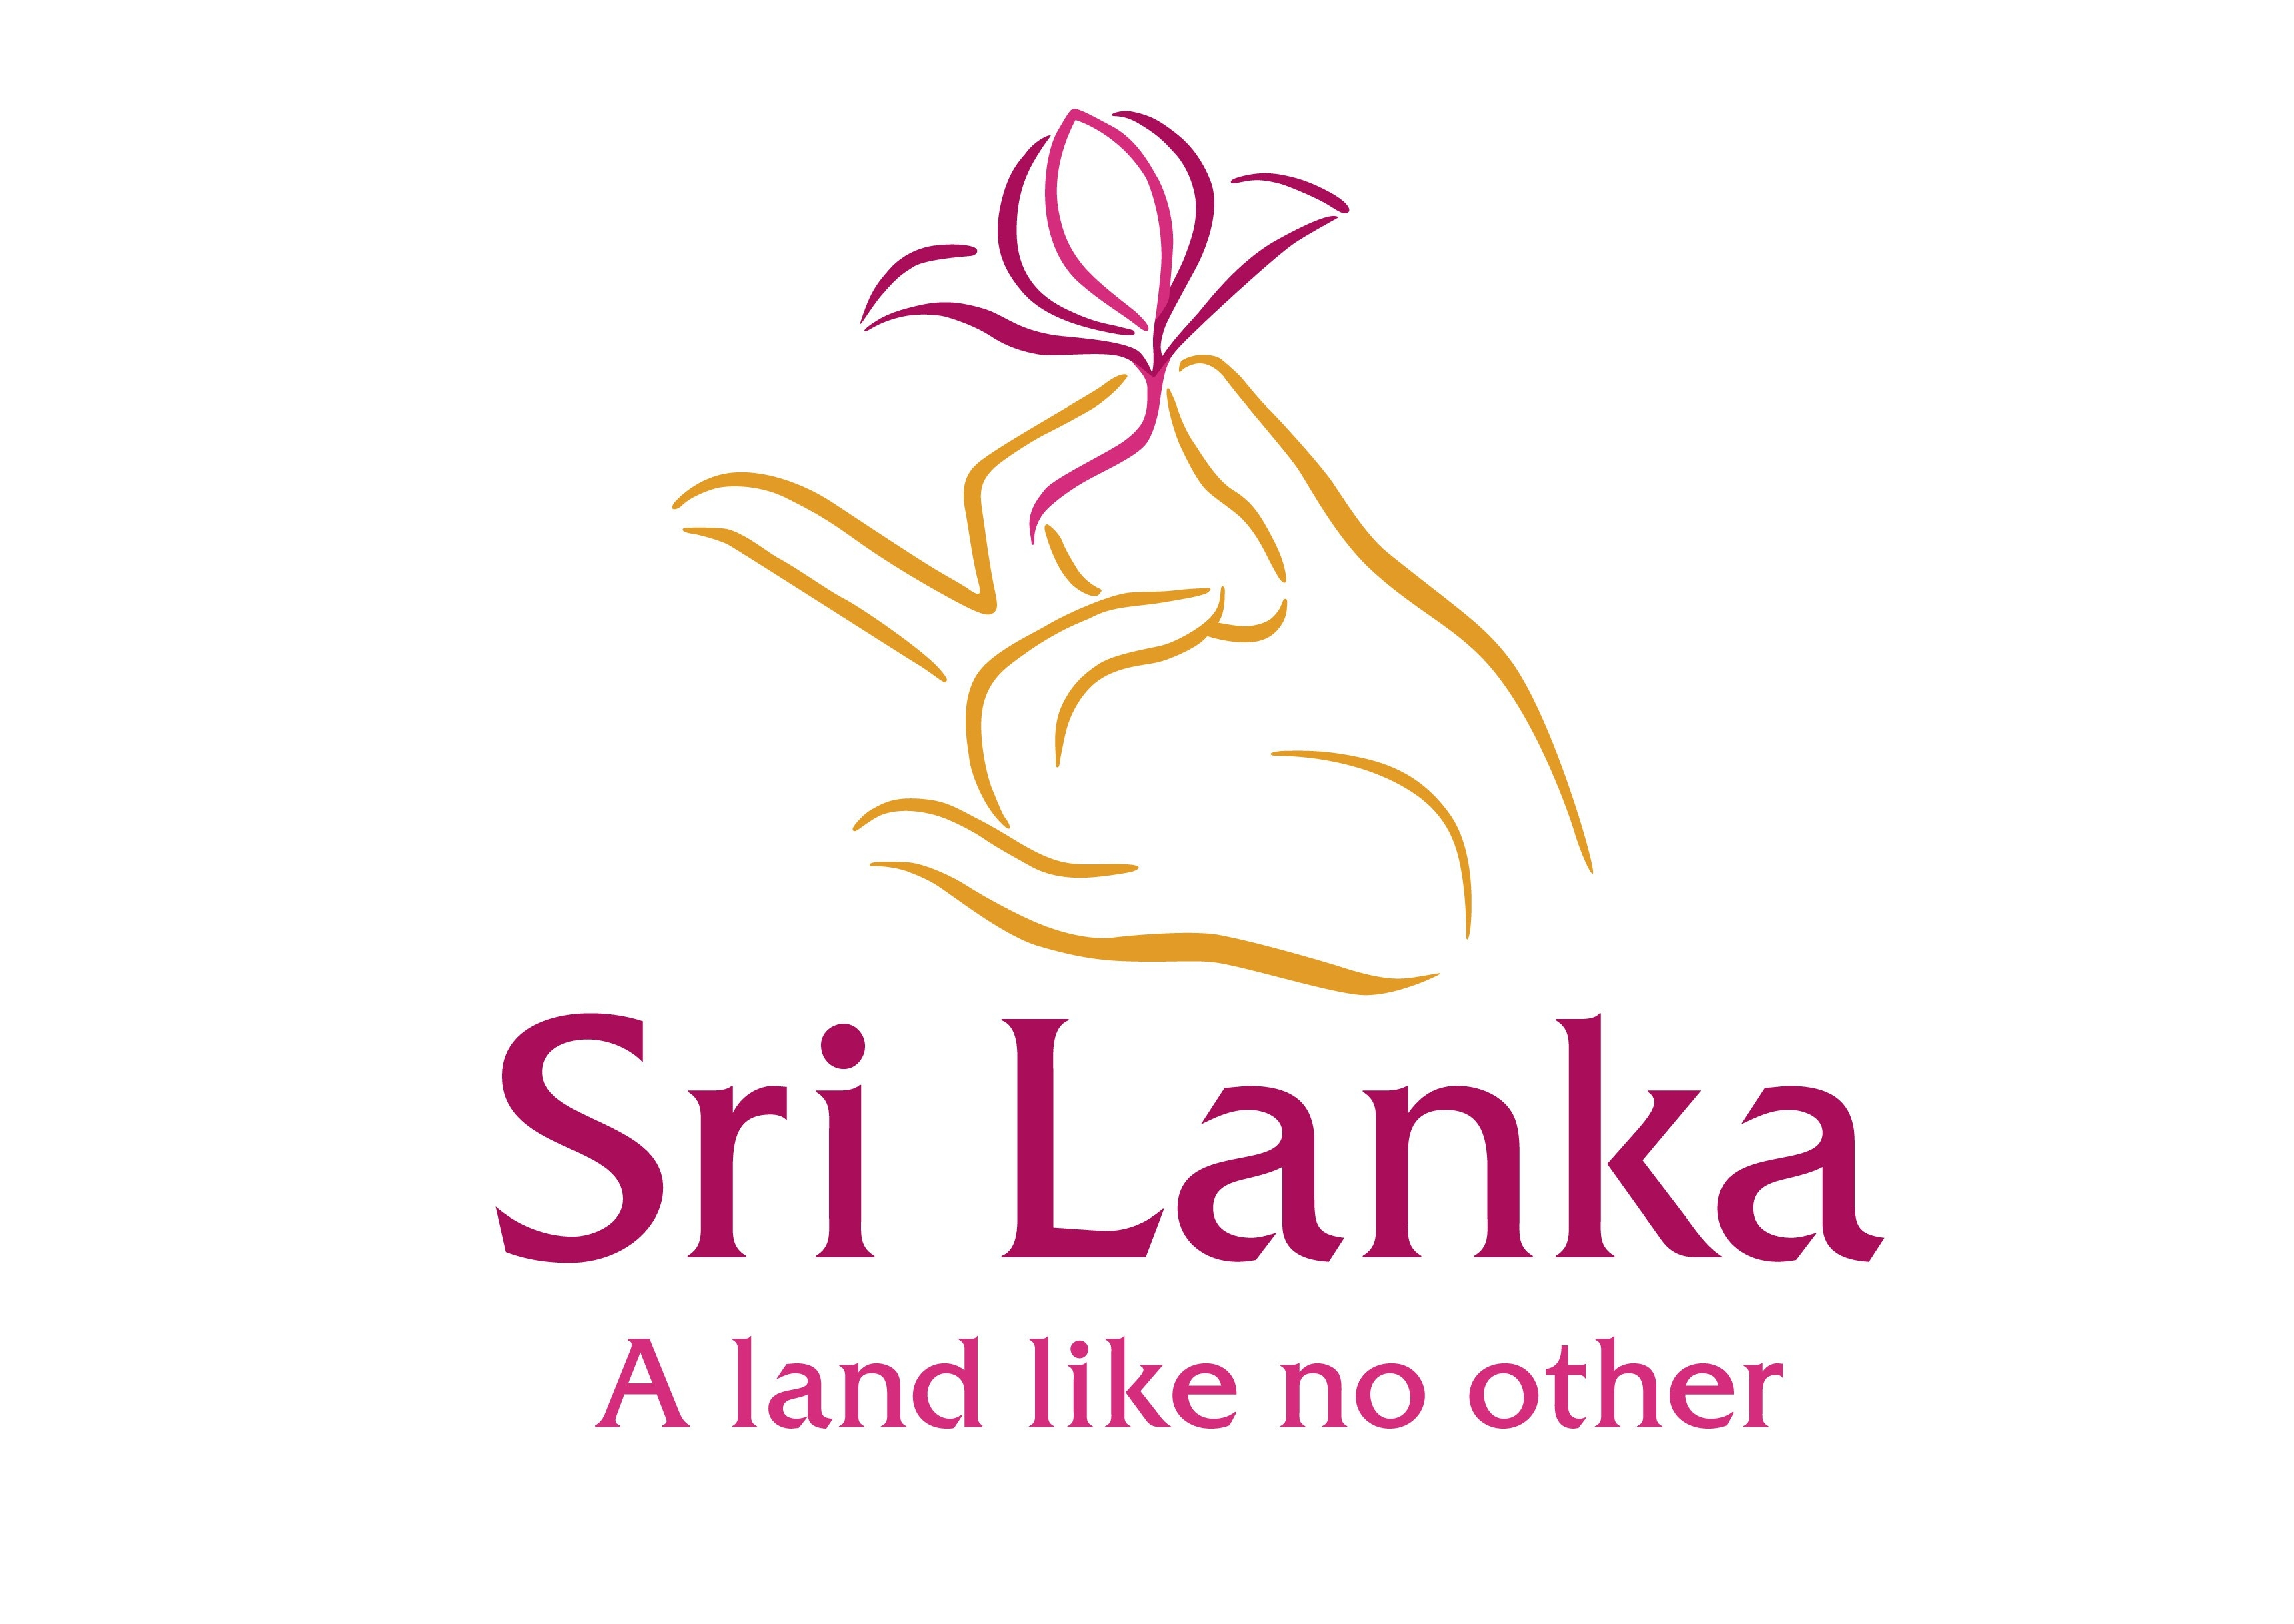 sri lanka travel tourism essay Sri lanka (/ s r i ː ˈ l ɑː ŋ k ə, - ˈ l the country's main economic sectors are tourism, tea export, clothing, rice production and other agricultural.